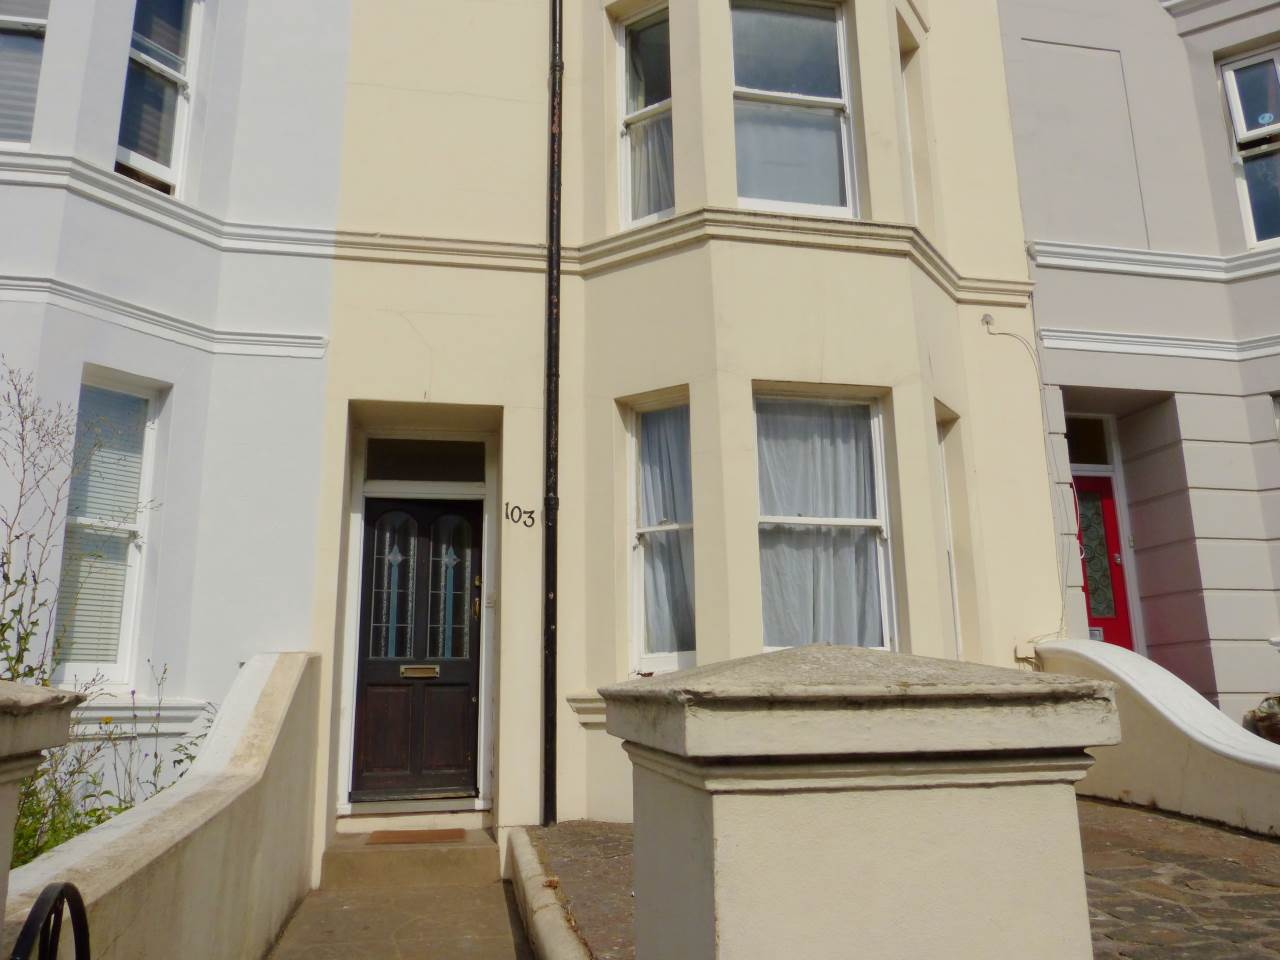 6 bed house to rent in Brighton - Property Image 1